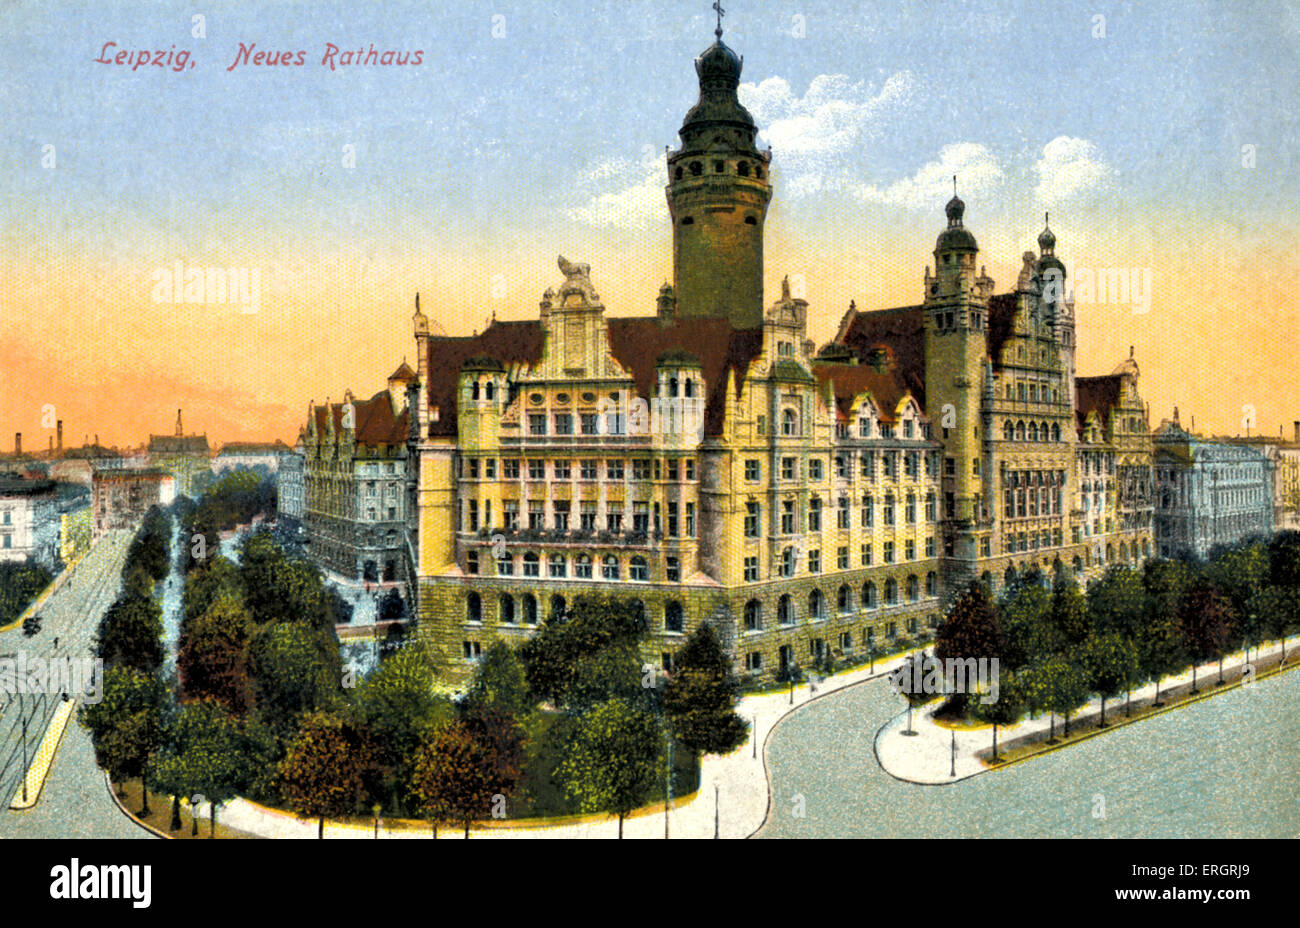 Leipzig New Town Hall Neues Rathaus Early 20th Century Postcard Stock Photo Alamy